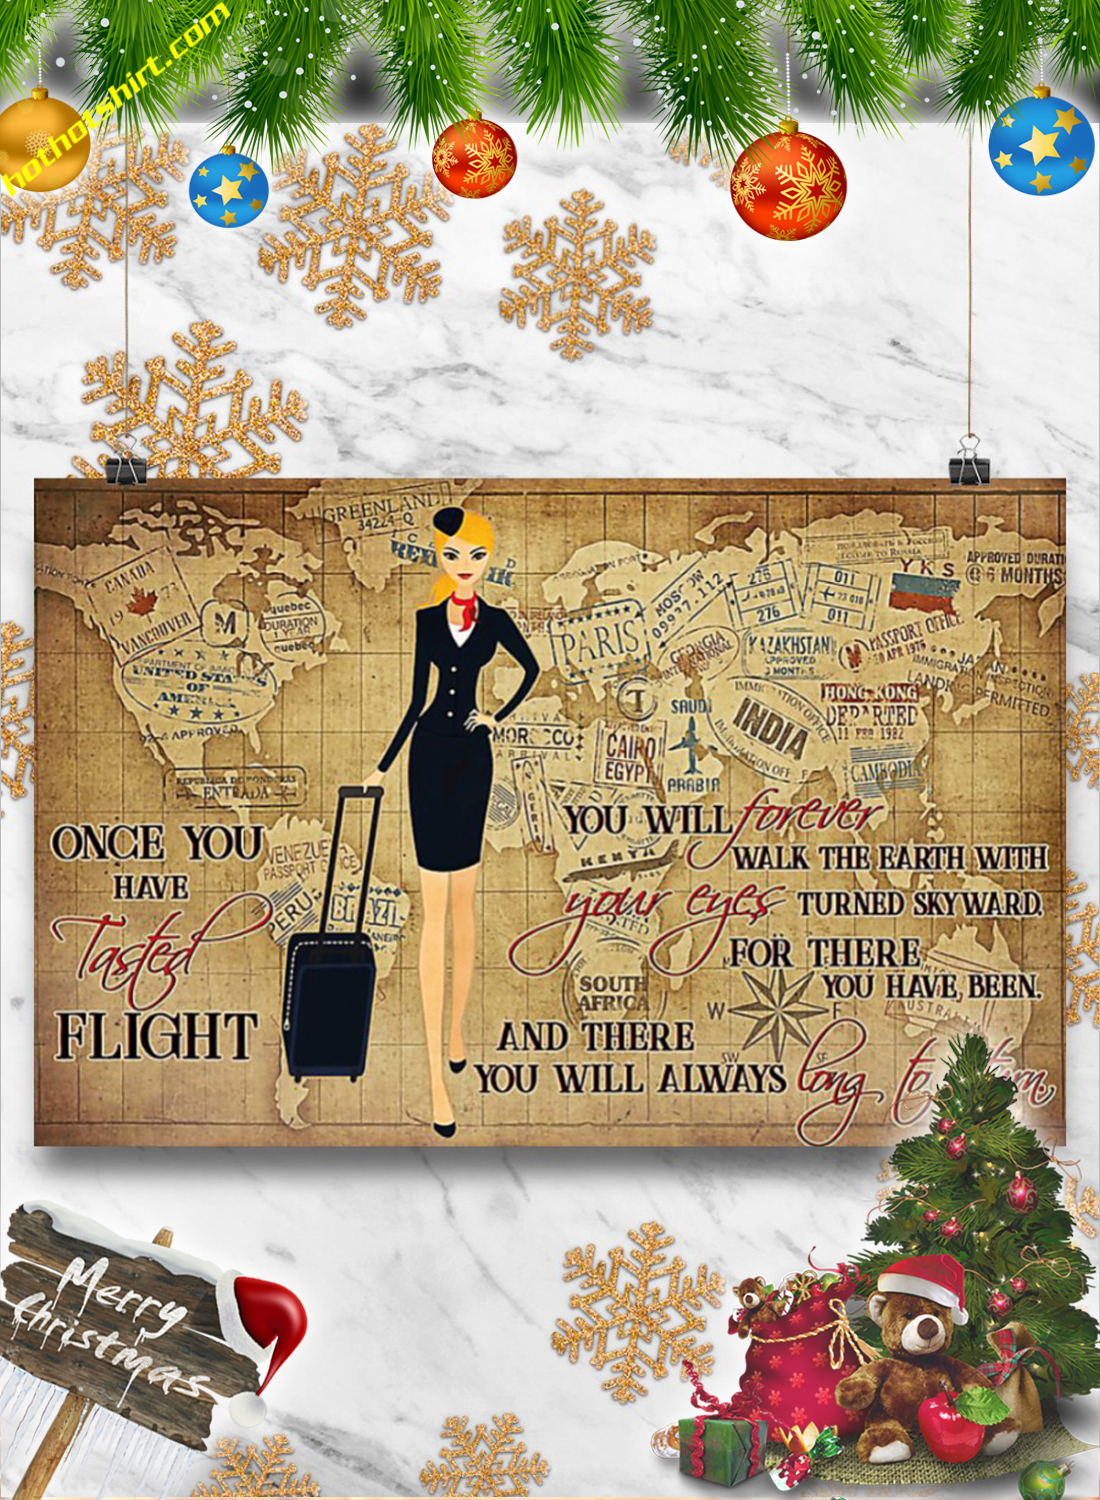 Once you have tasted flight Flight attendant poster 3